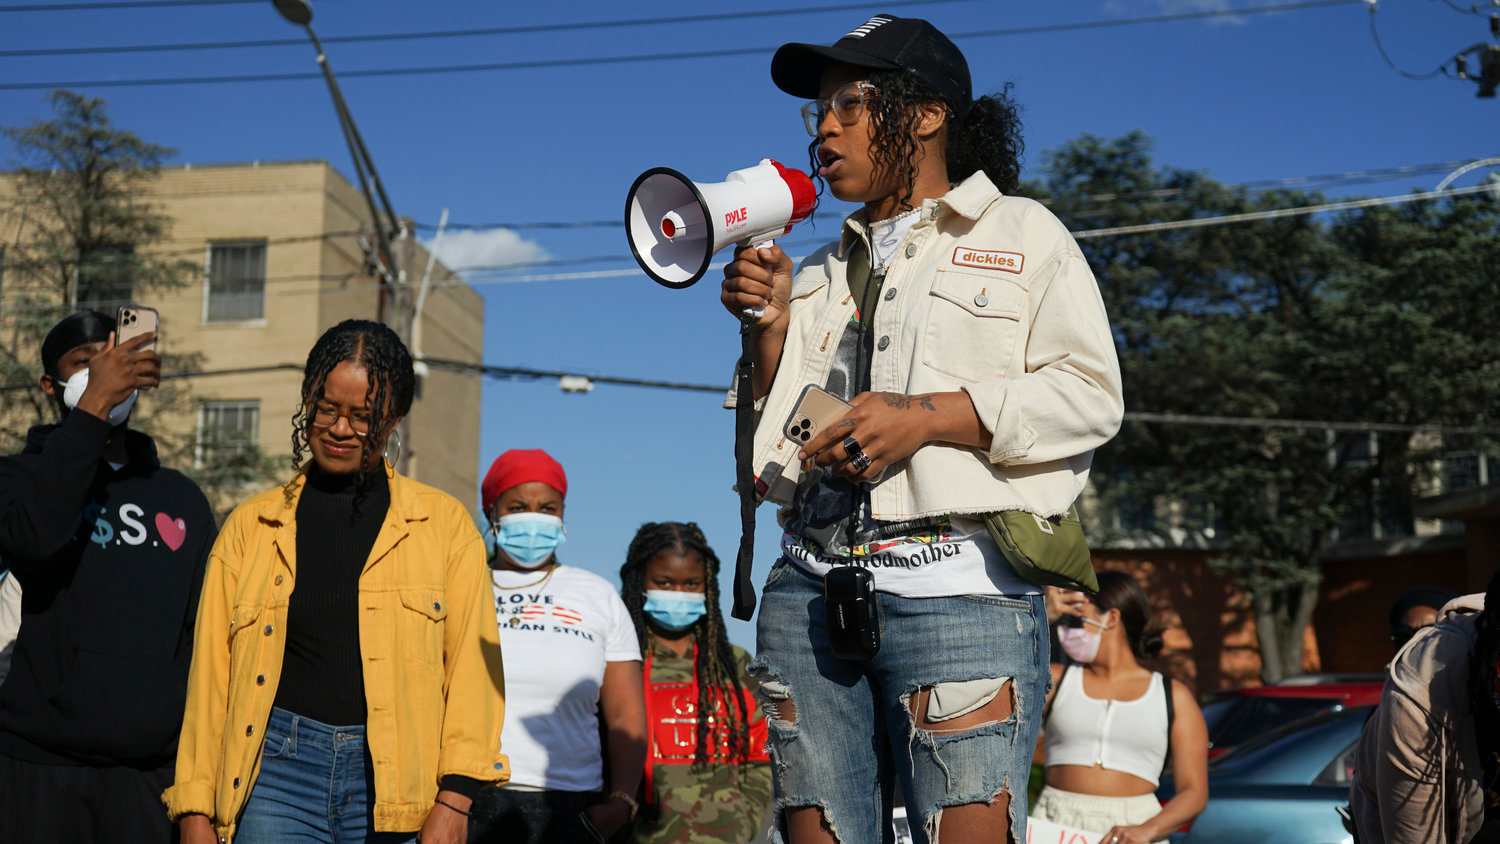 Valley Streamer Christine Rivera, left, and Elmont resident Goldie Harrison, center, organized Monday's protest.